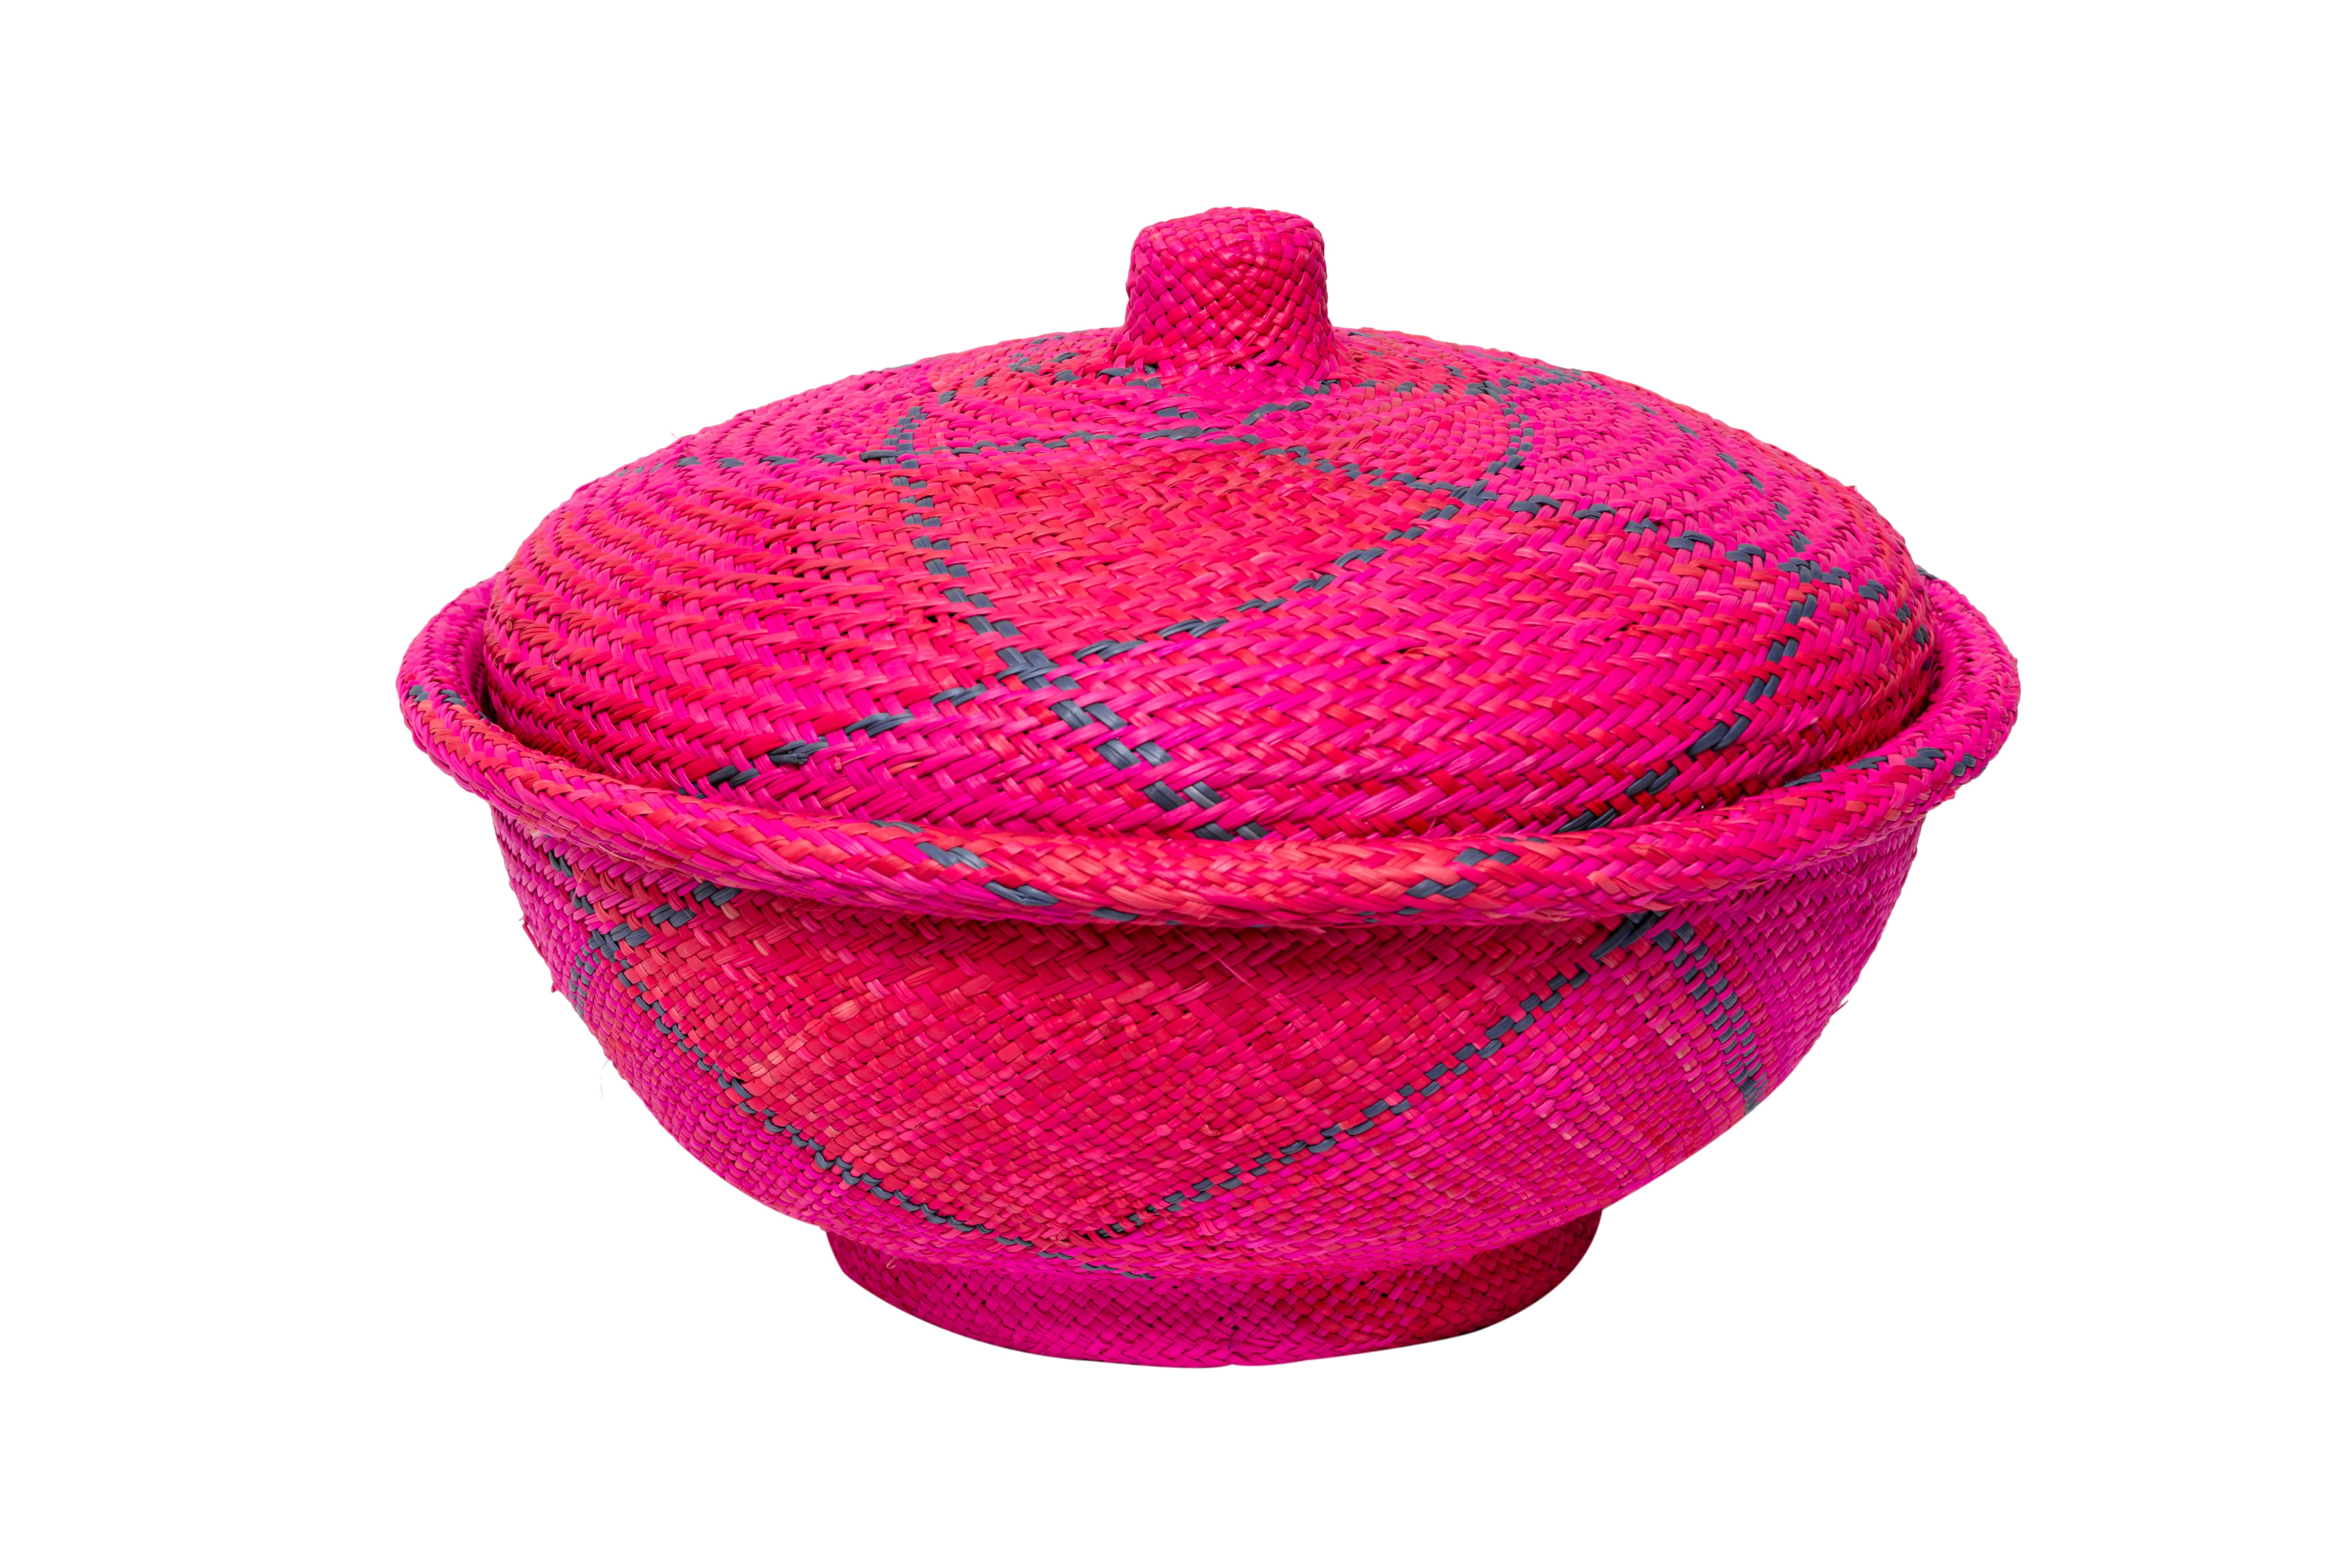 Bread basket in iraca fuchsia